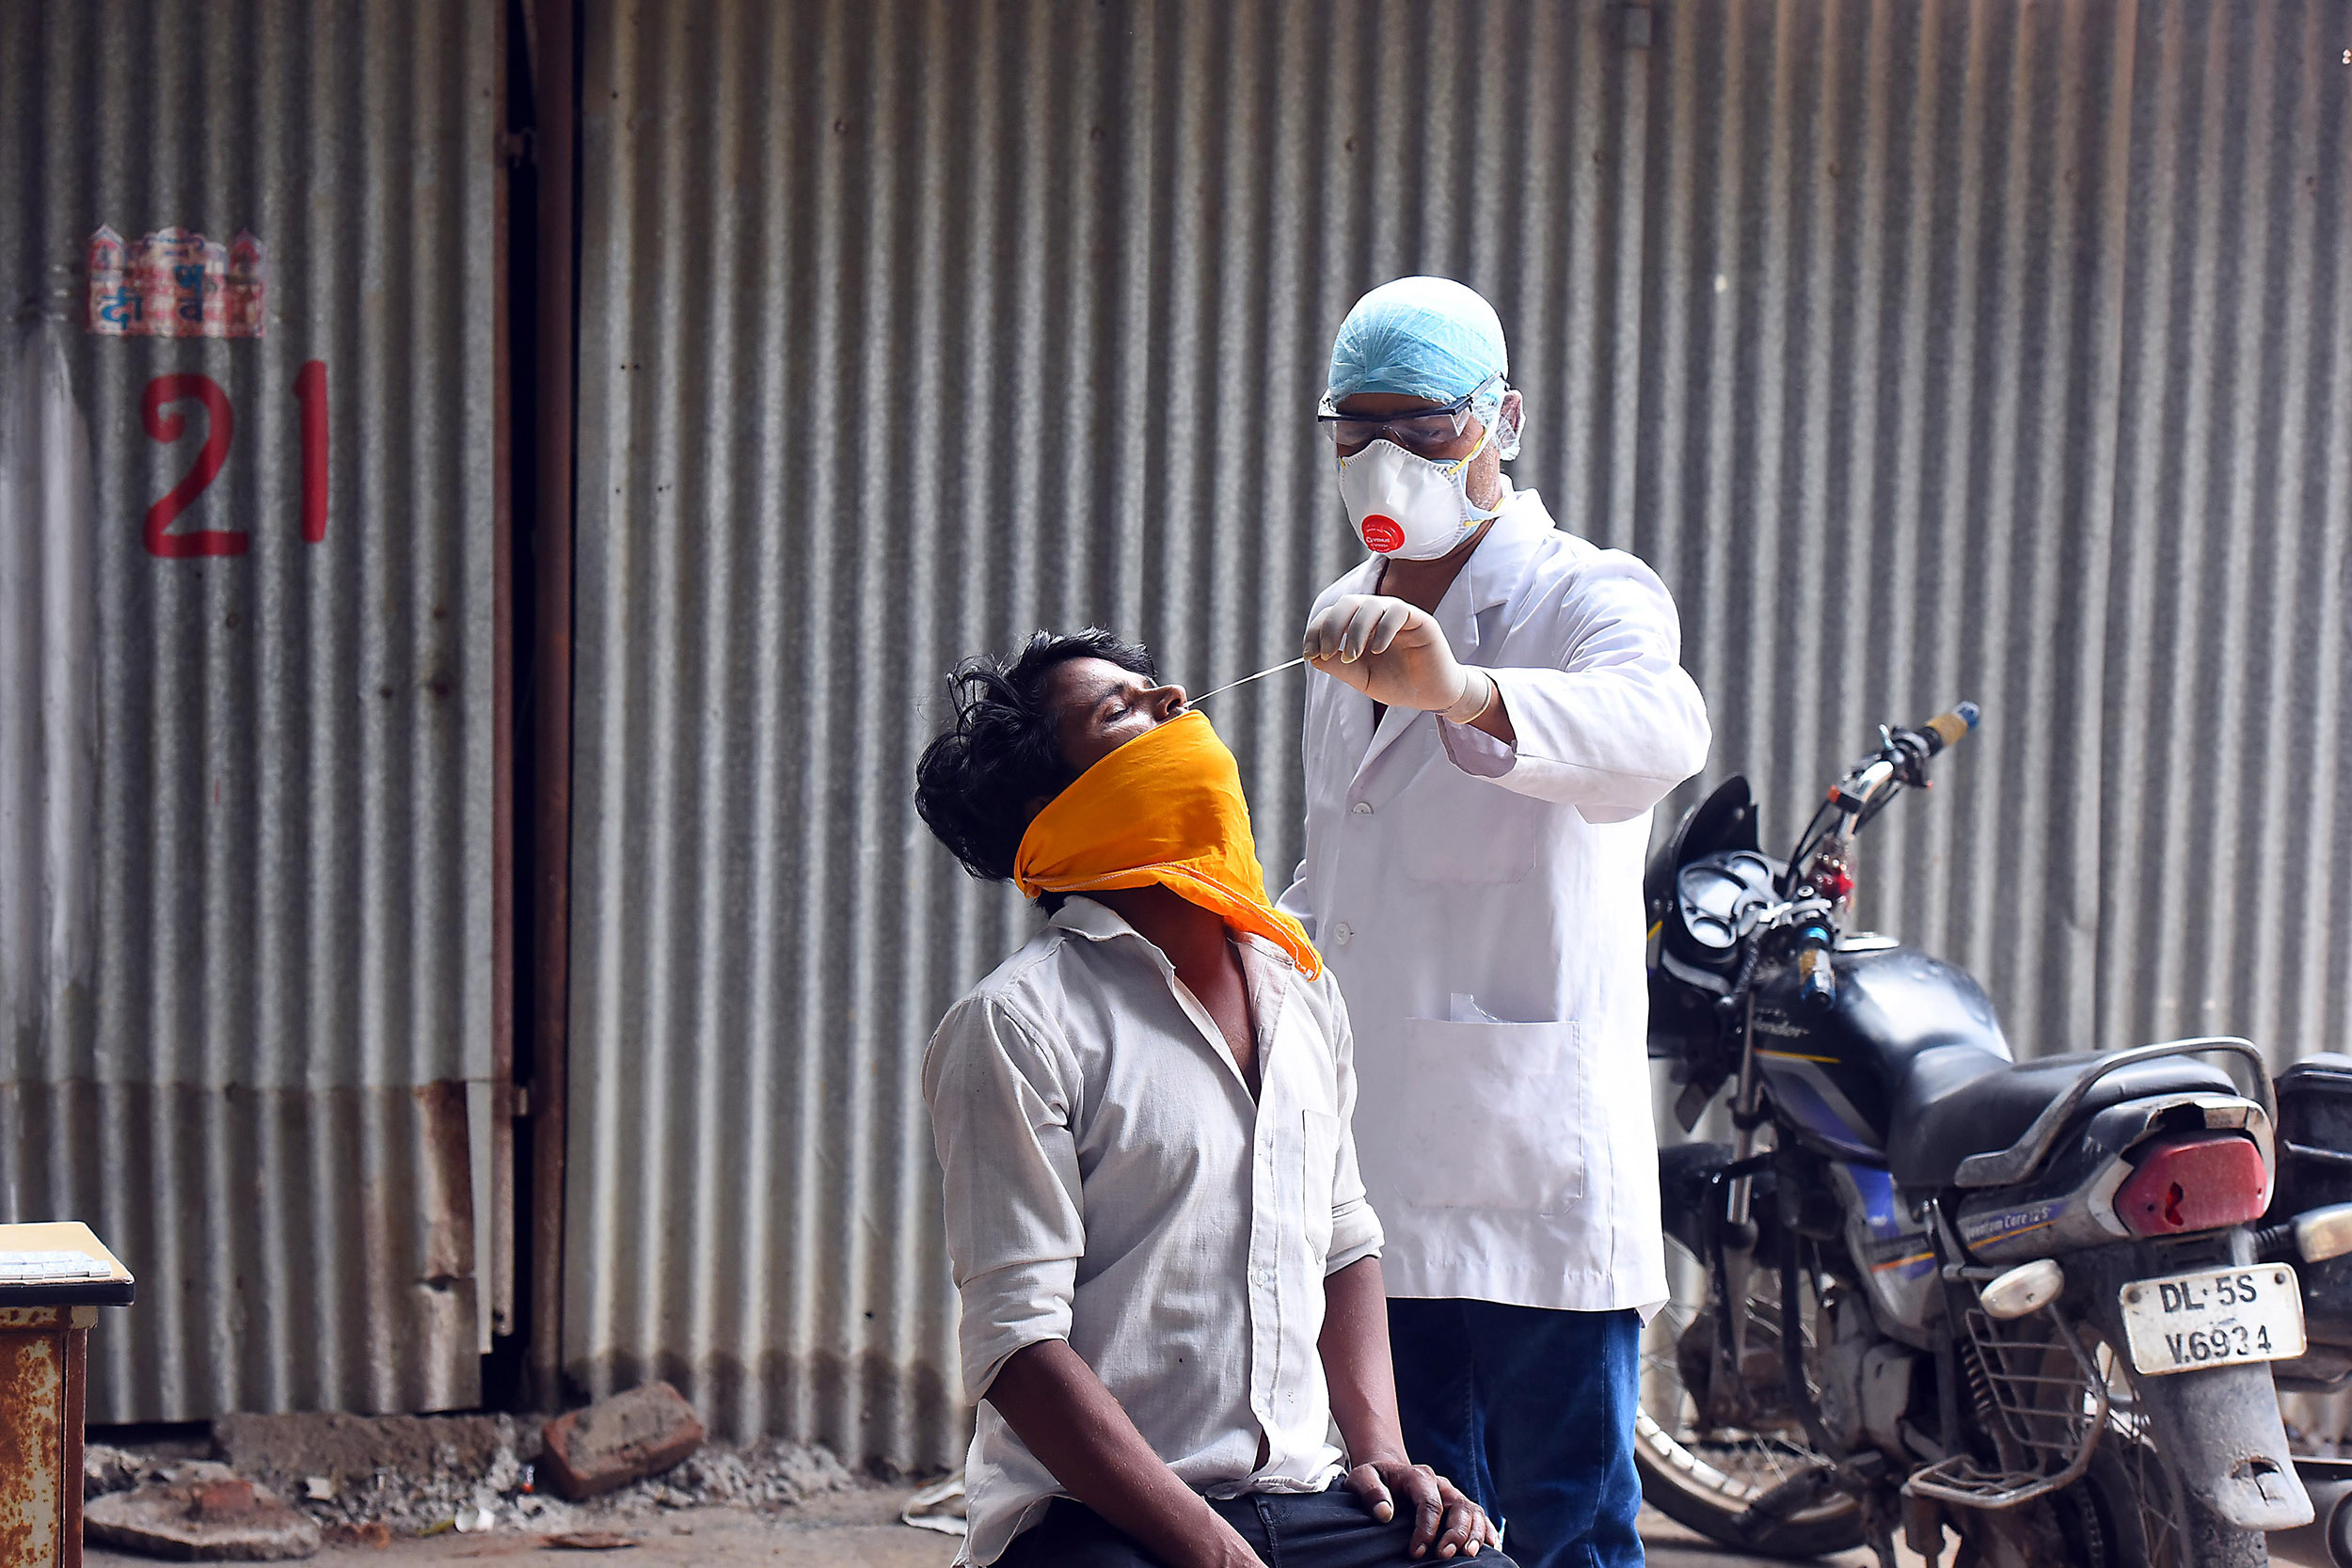 A health worker takes a swab sample from a man for coronavirus testing on September 6, in New Delhi, India.